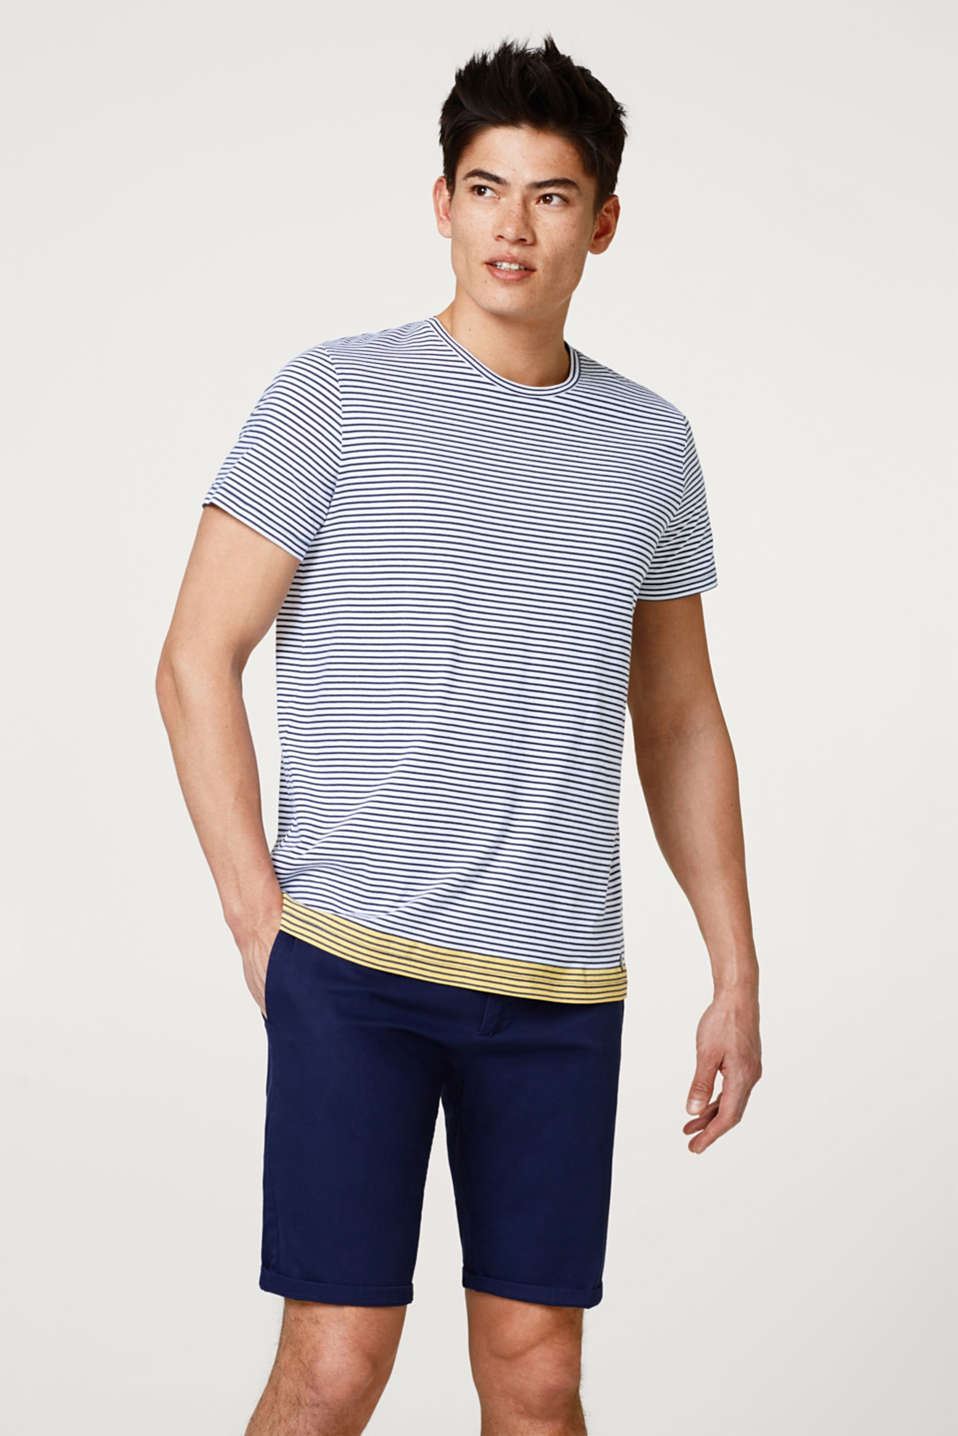 Esprit - Finely striped T-shirt in cotton jersey